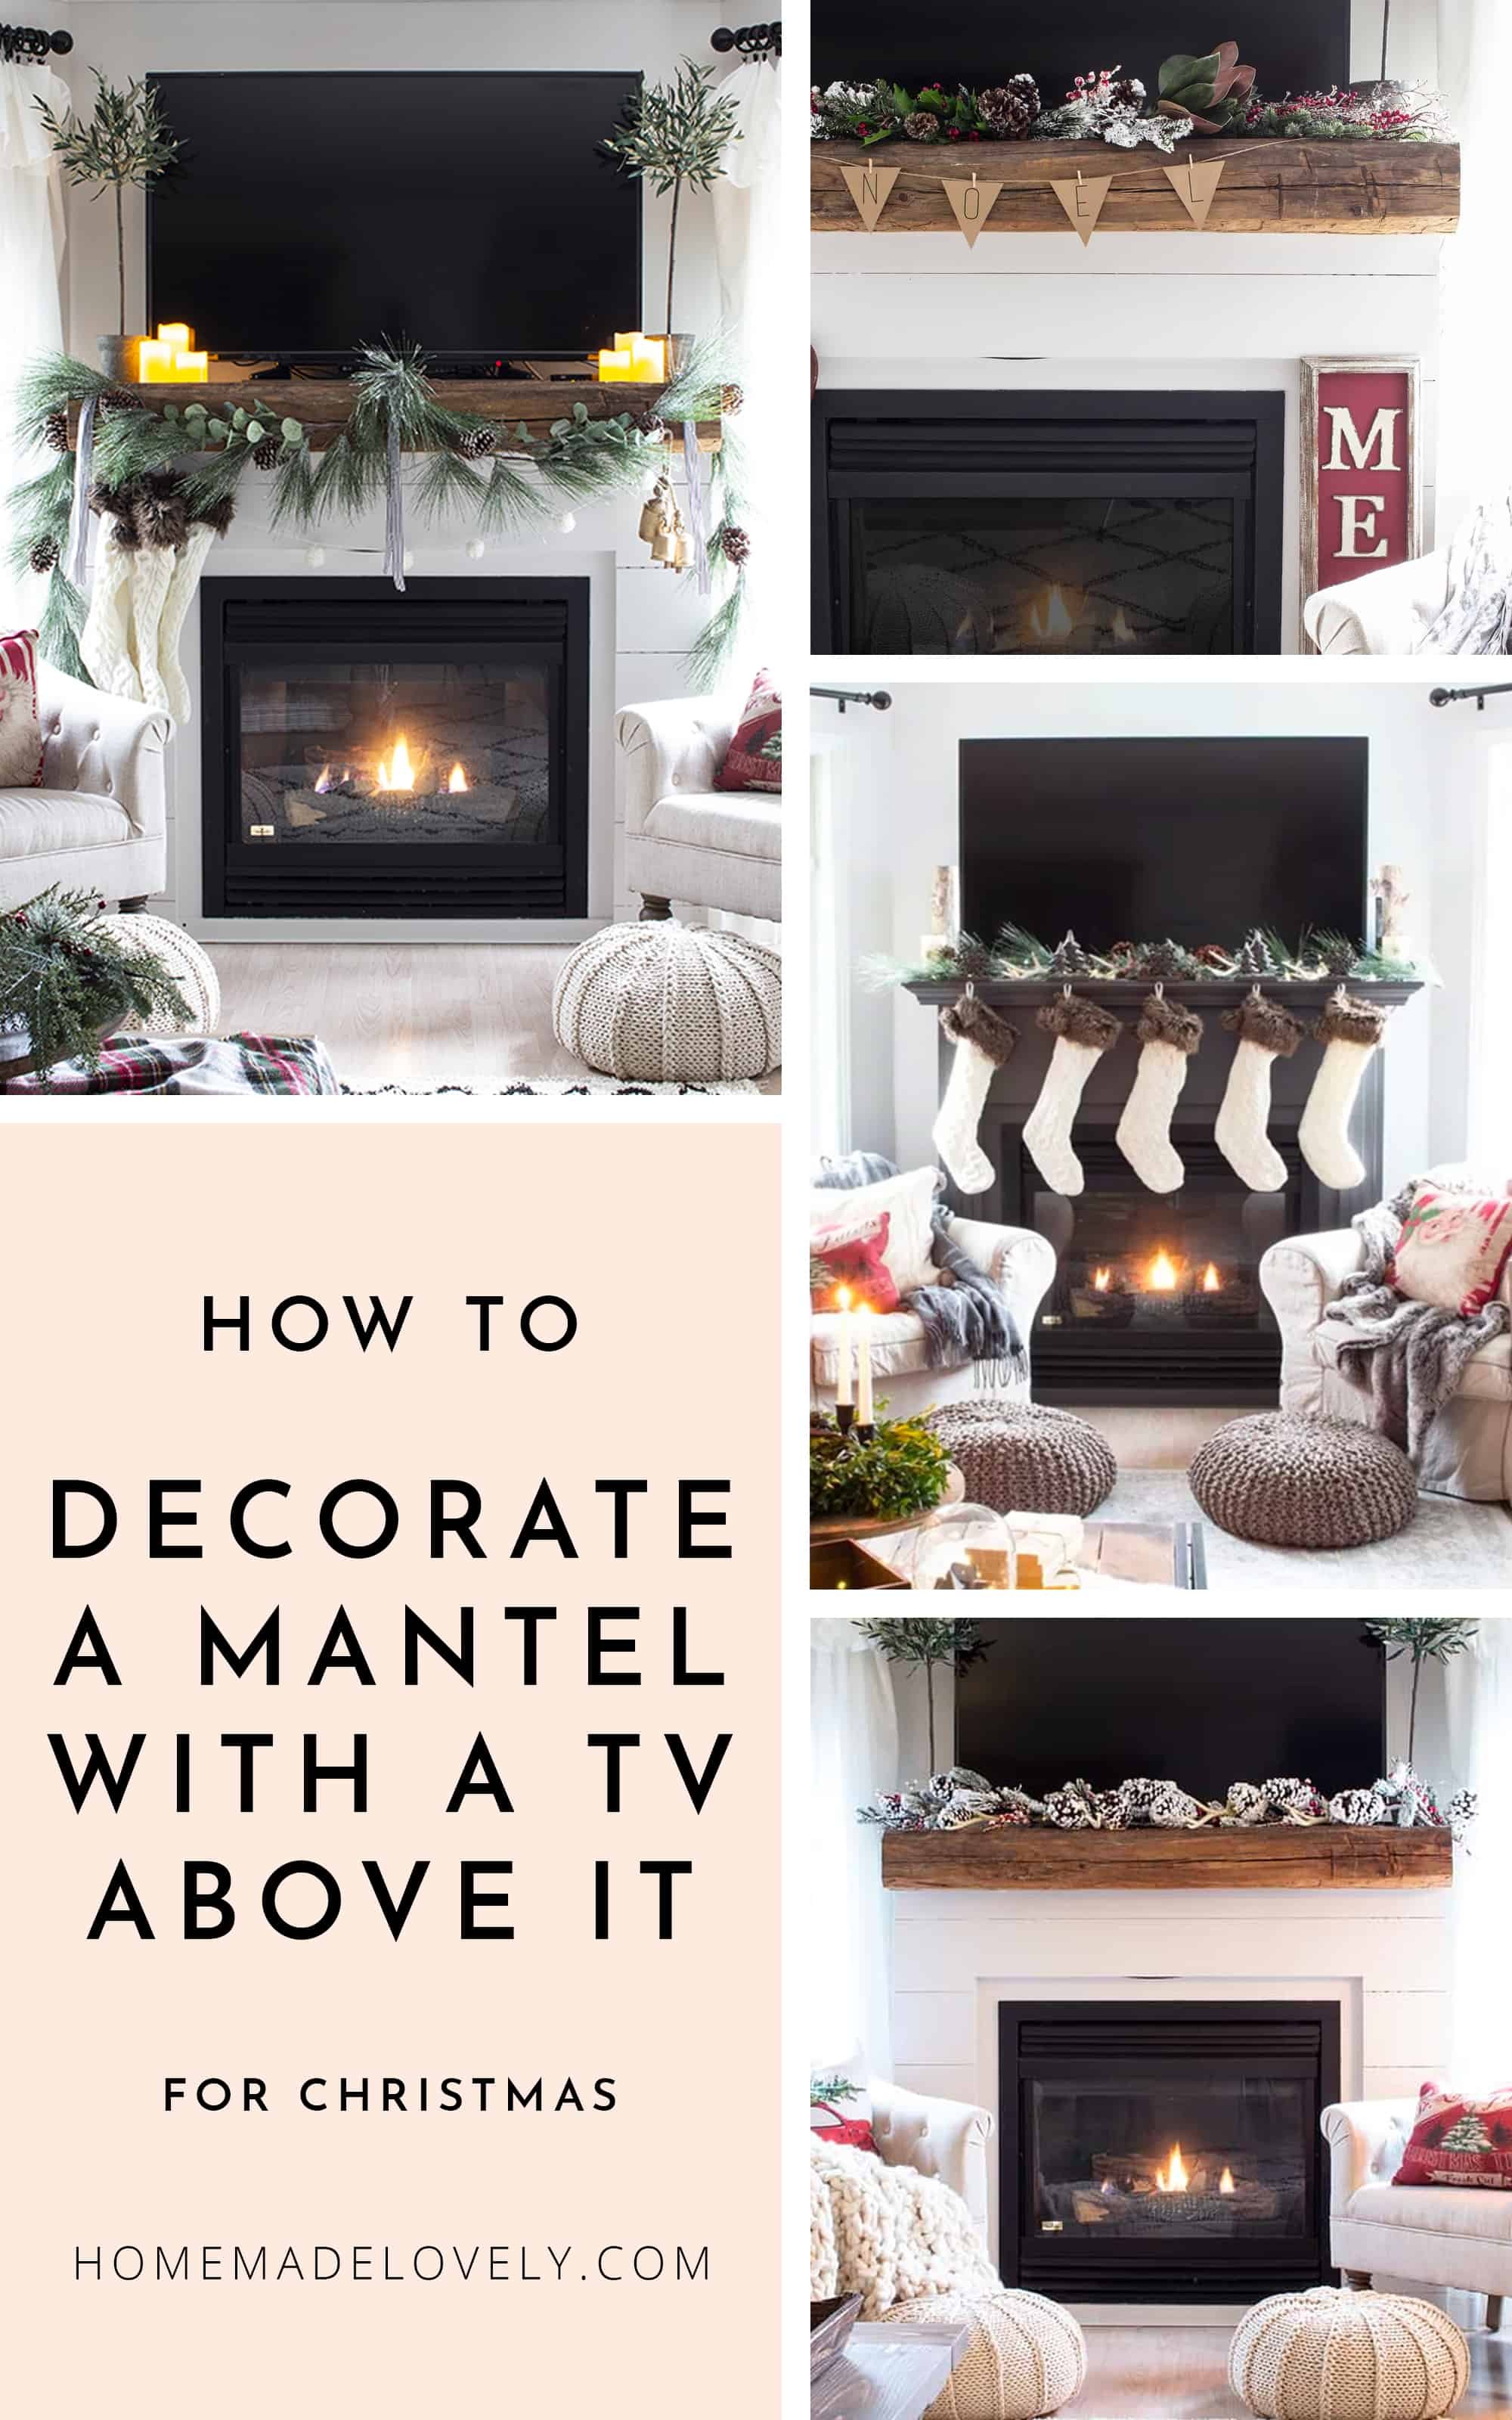 A Mantel With Tv Above It For, How To Decorate Fireplace With Tv Over Mantel